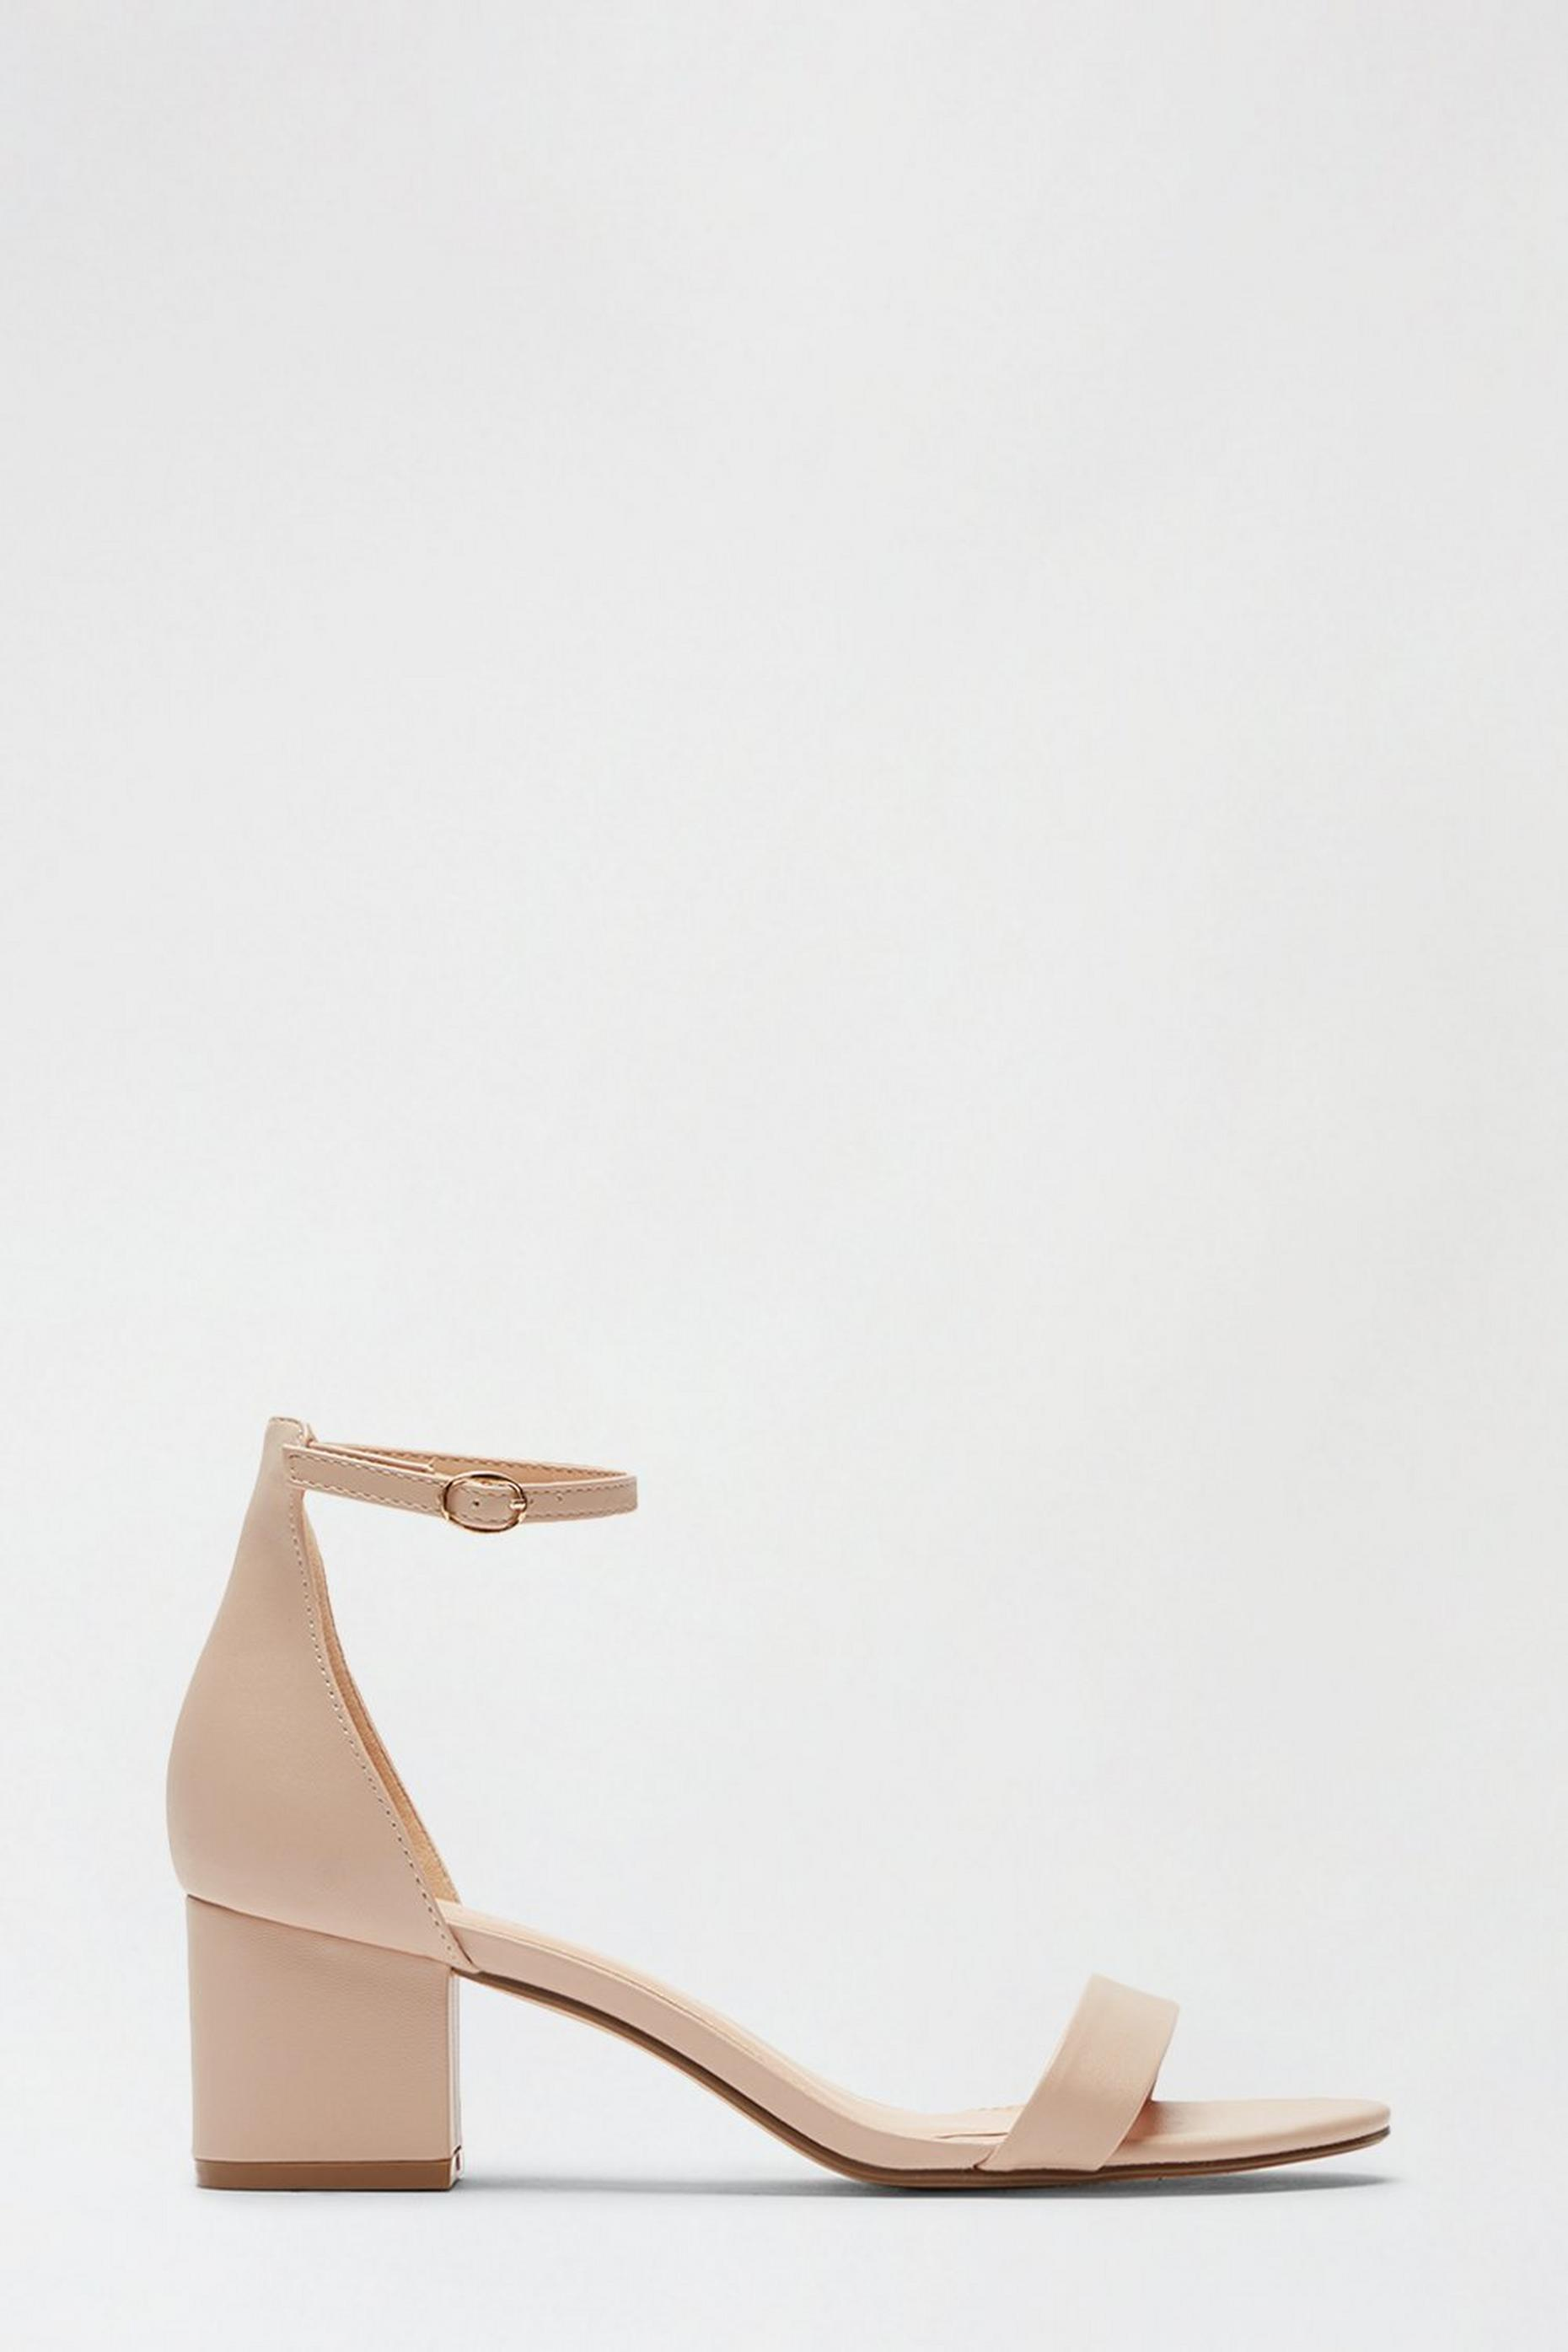 Blush Summer Low Block Heeled Sandal